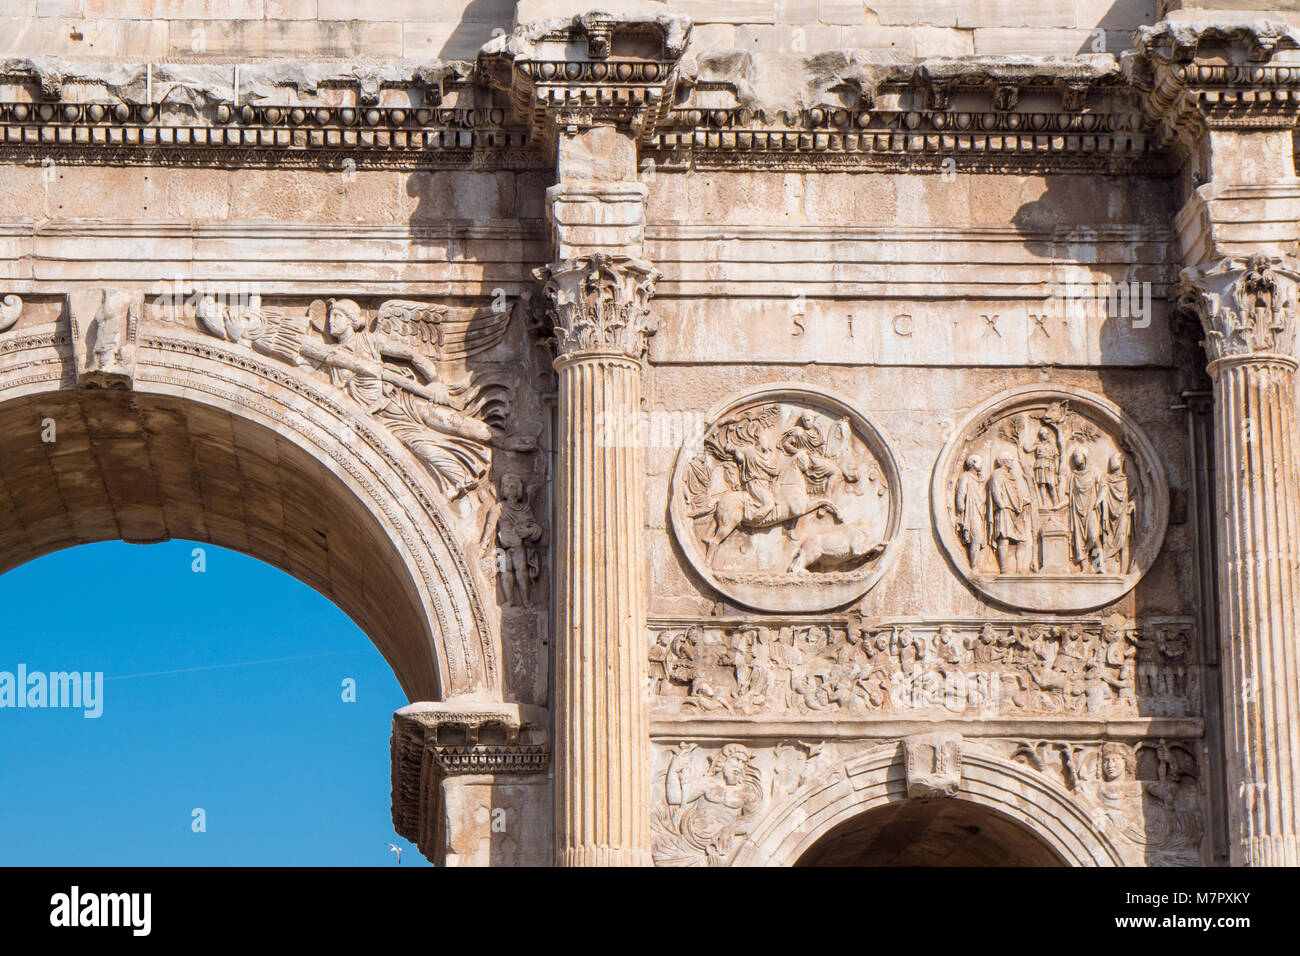 Detail of the Arch of Constantine near the Roman Colosseum, landmark and symbol of Rome, Italy - Stock Image